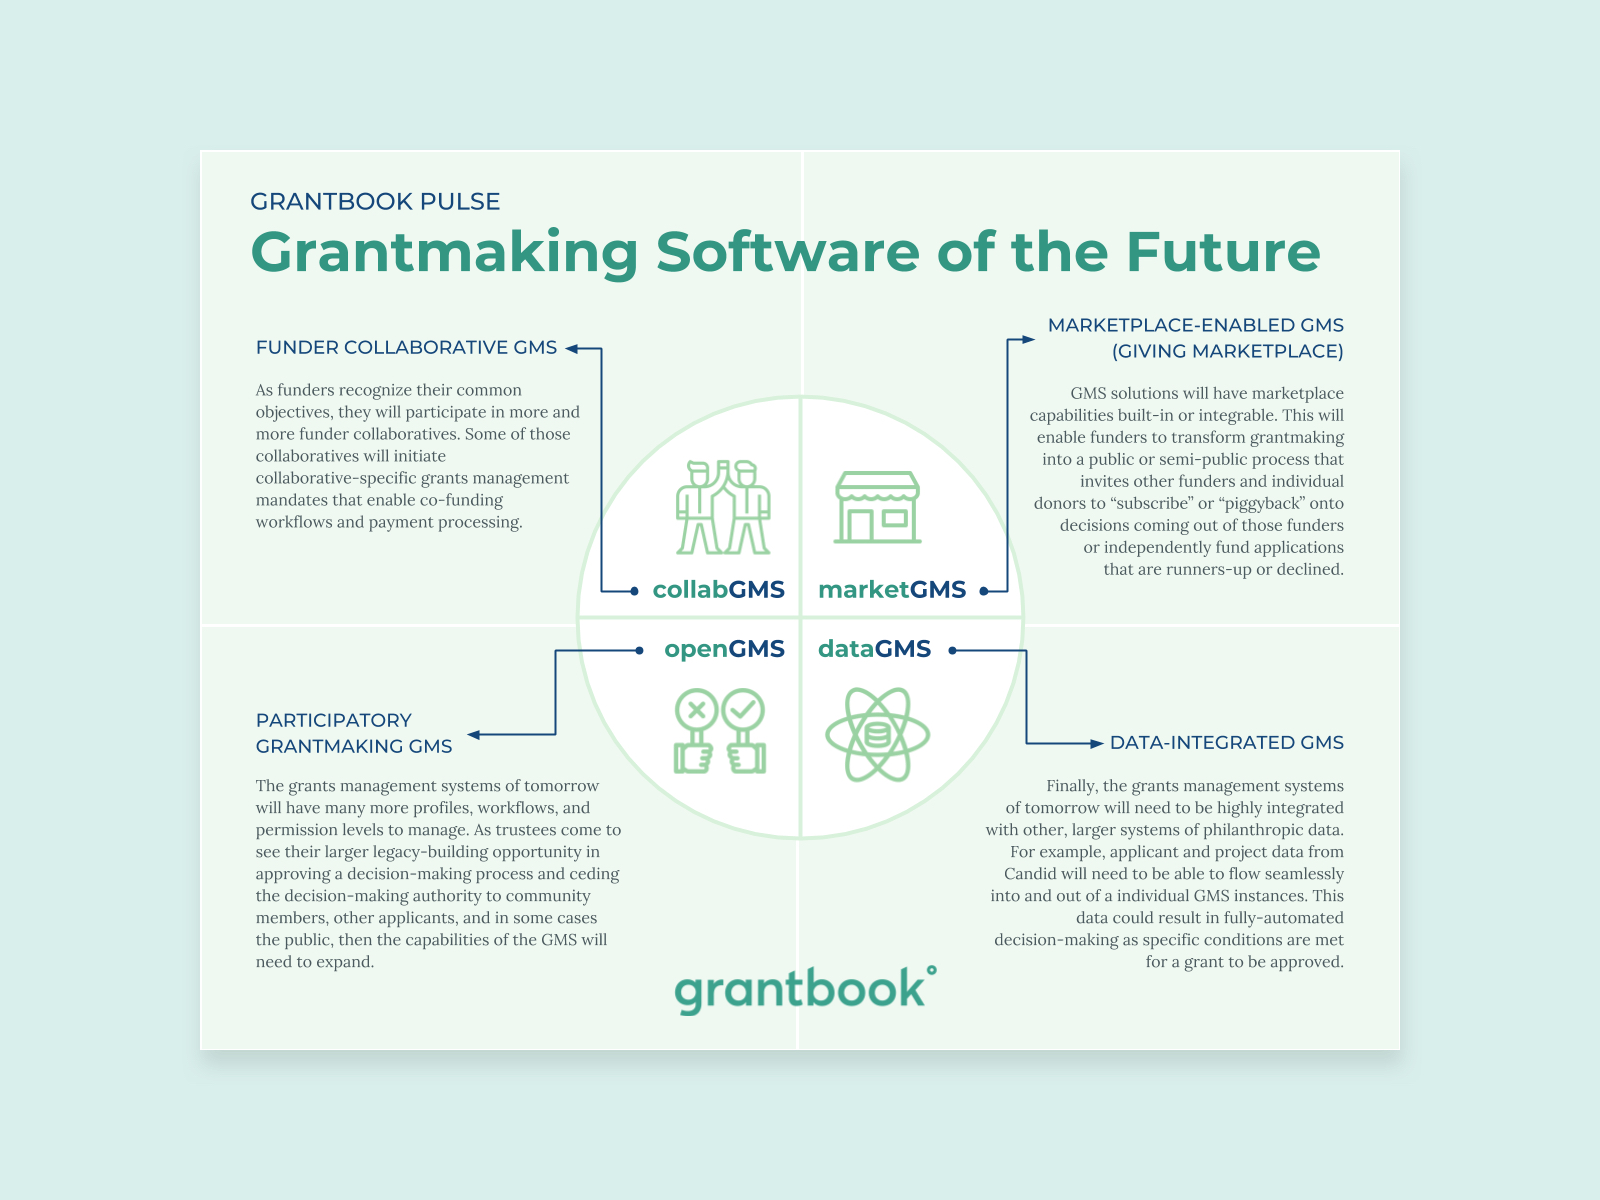 An infographic forecasting grantmaking software trends